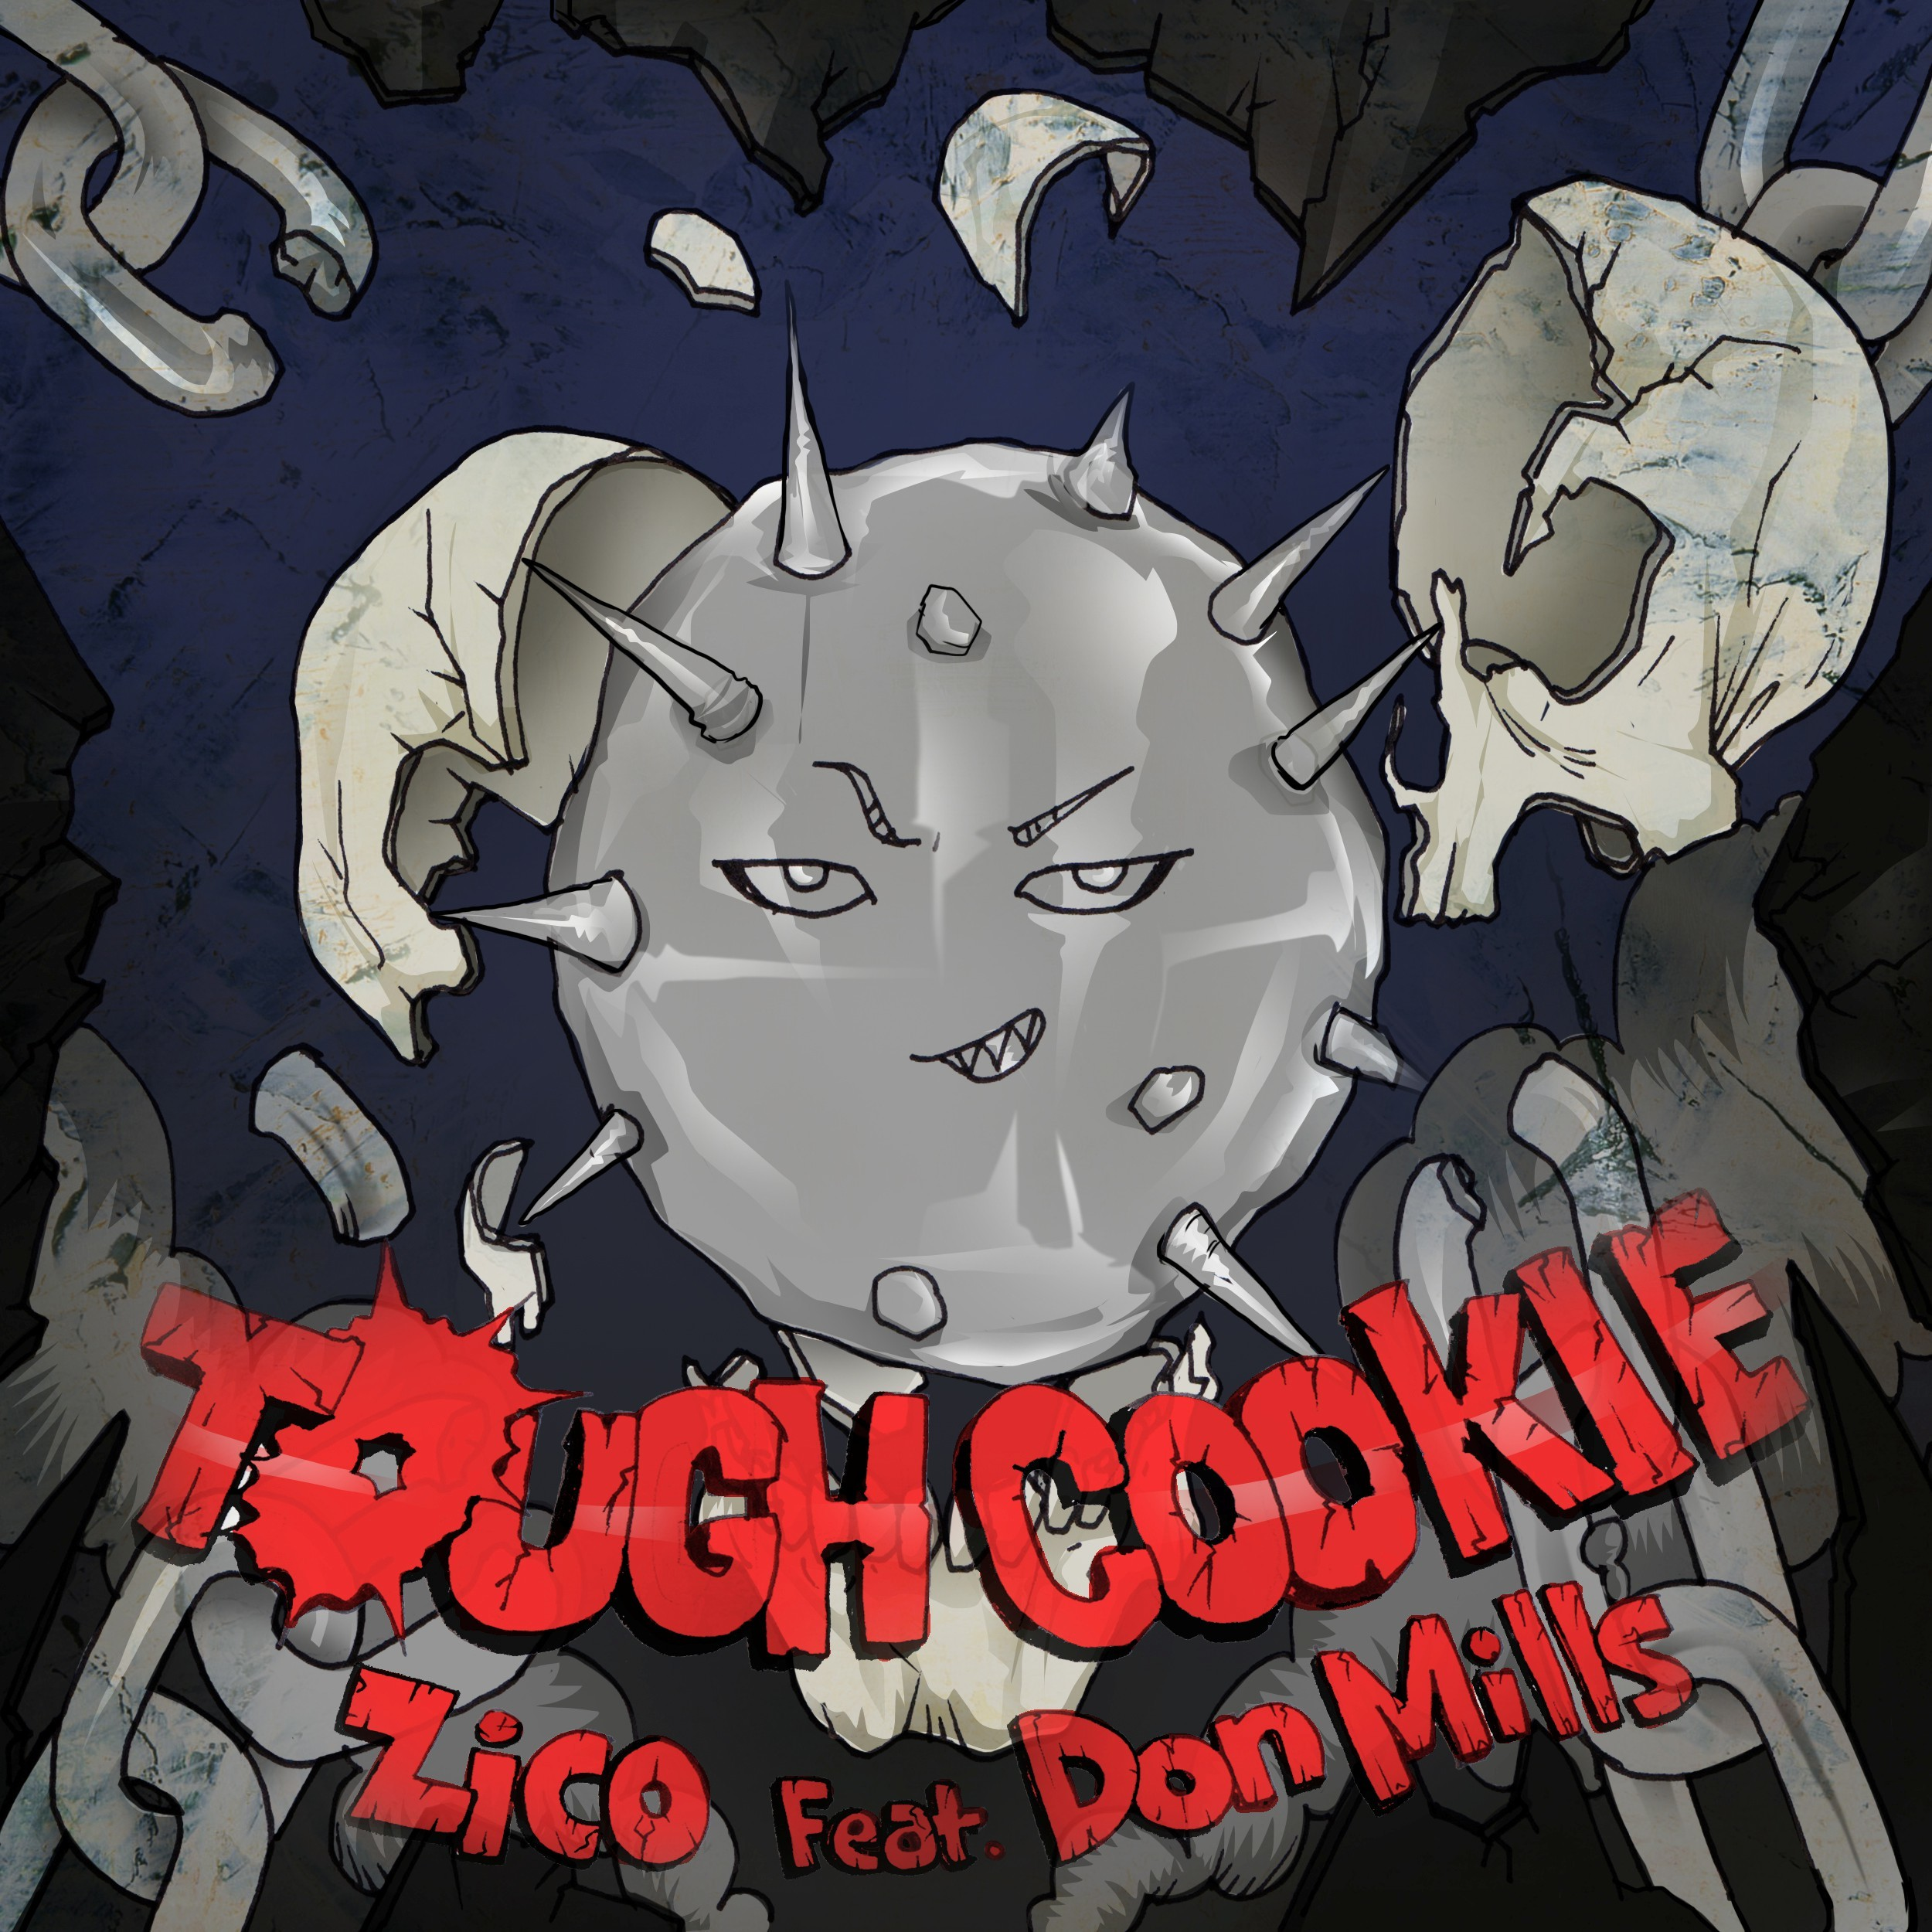 8. Block B Zico 單曲《Tough Cookie(featuring Don Mills)》(2014)